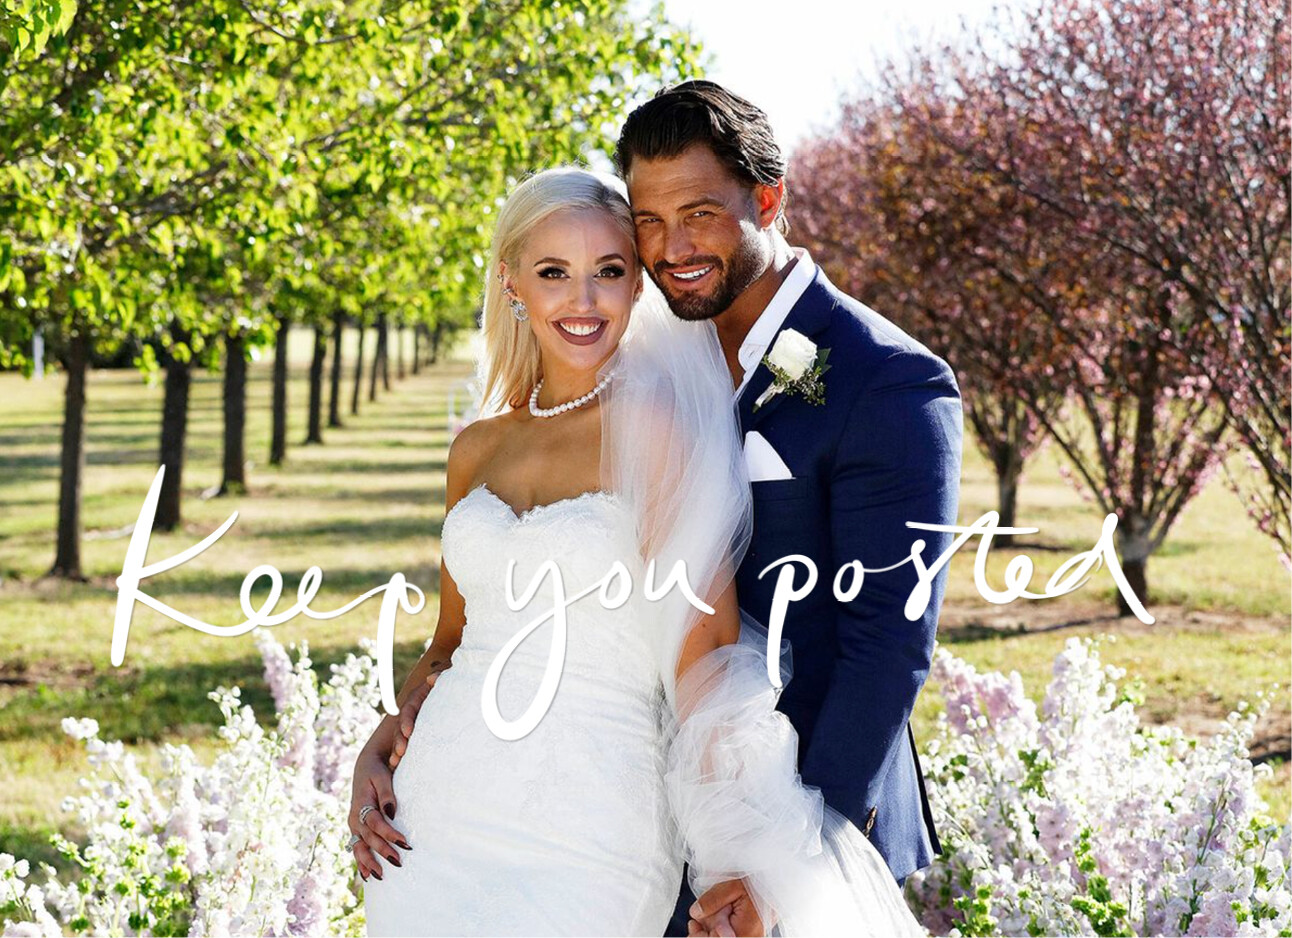 Married at the first sight